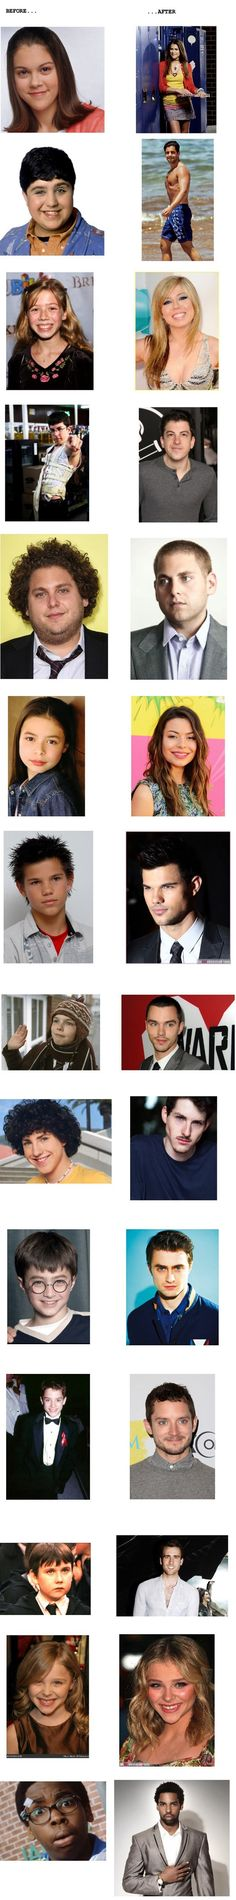 Celebrities then and now.